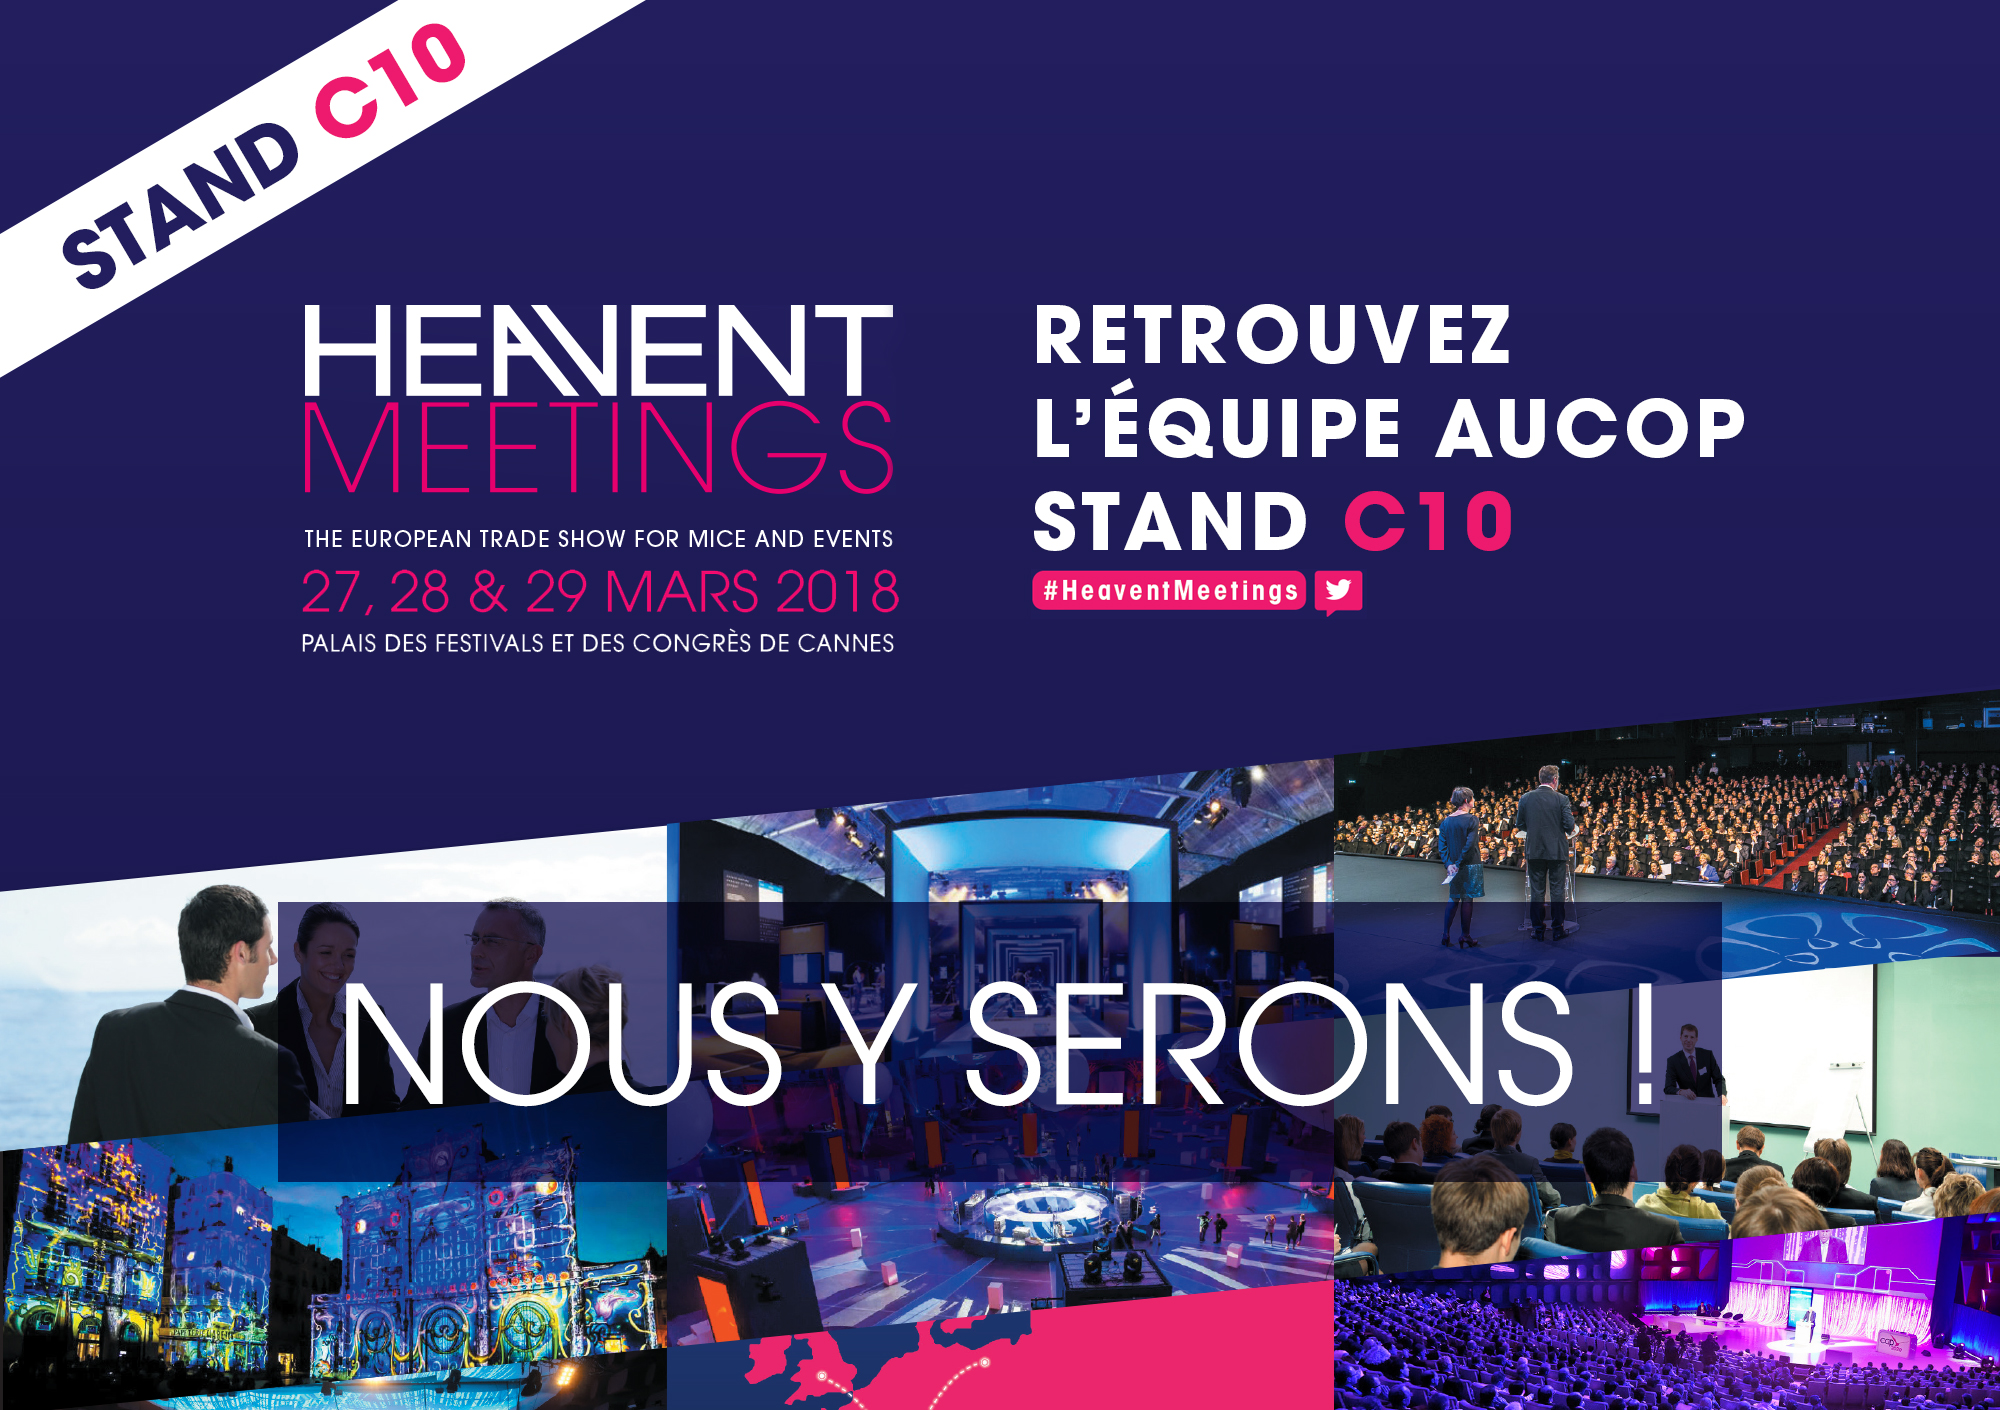 visuel-site-aucop-heaventmeetings-event-cannes